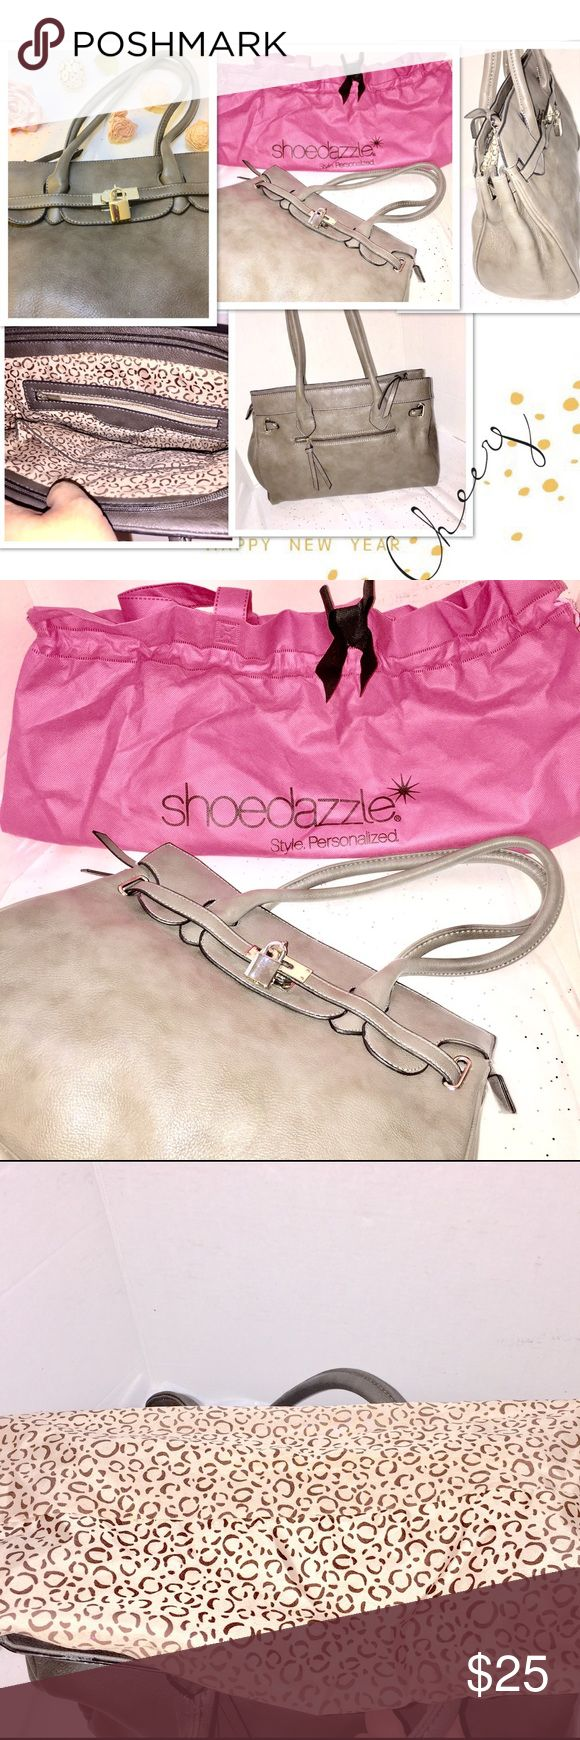 Shoedazzle 🌷 Grey Silver Lock Tote Bag Clean, beautiful Shoedazzle 🌷 Grey Silver  Lock Tote, clean Condition, cones with pink Purse storage bag, used a few times. Shoedazzle Bags Totes